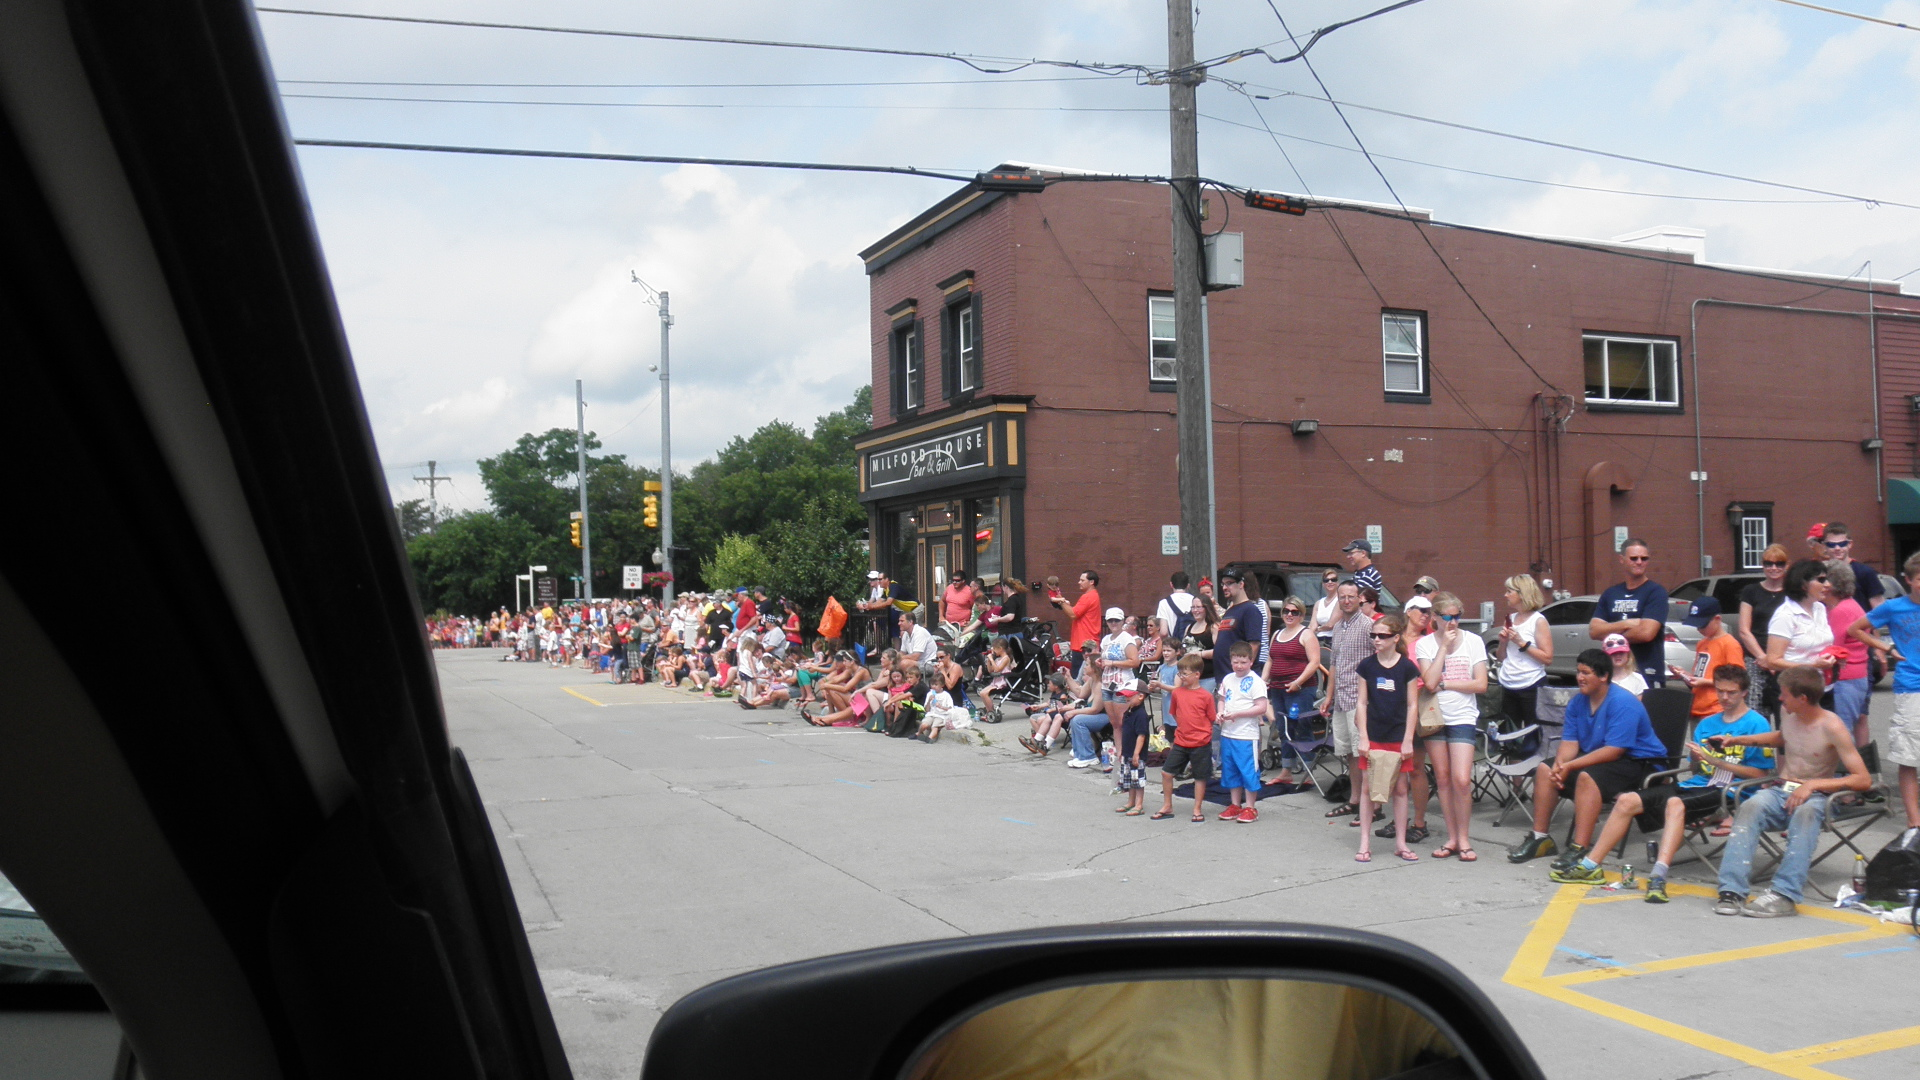 lots of people lining the street to see the parade